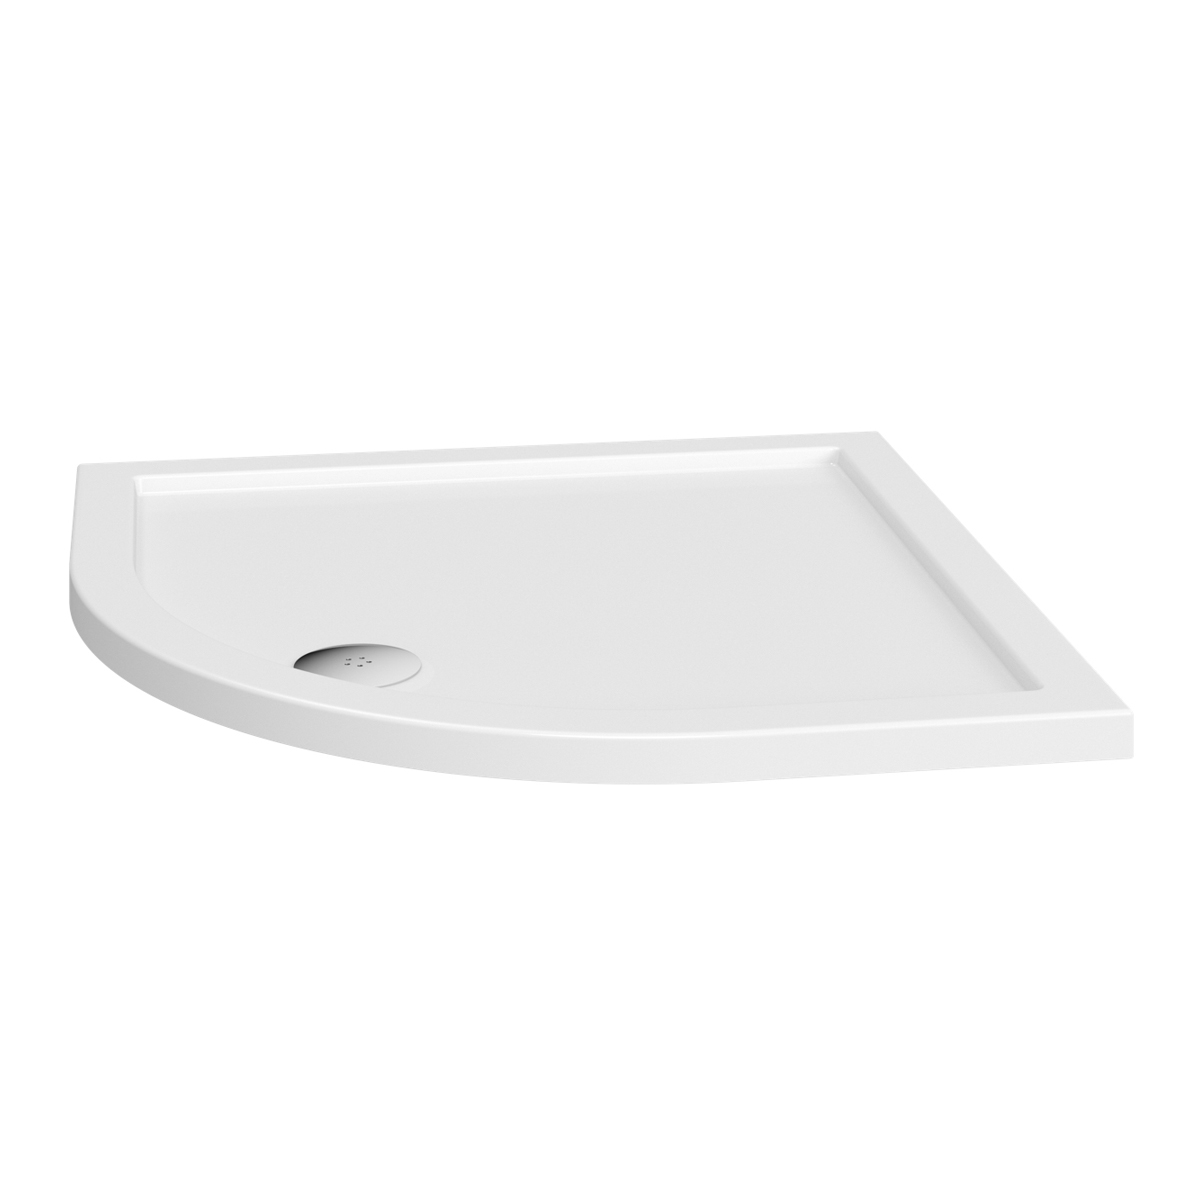 Image of Quadrant Pearlstone Shower Tray 900